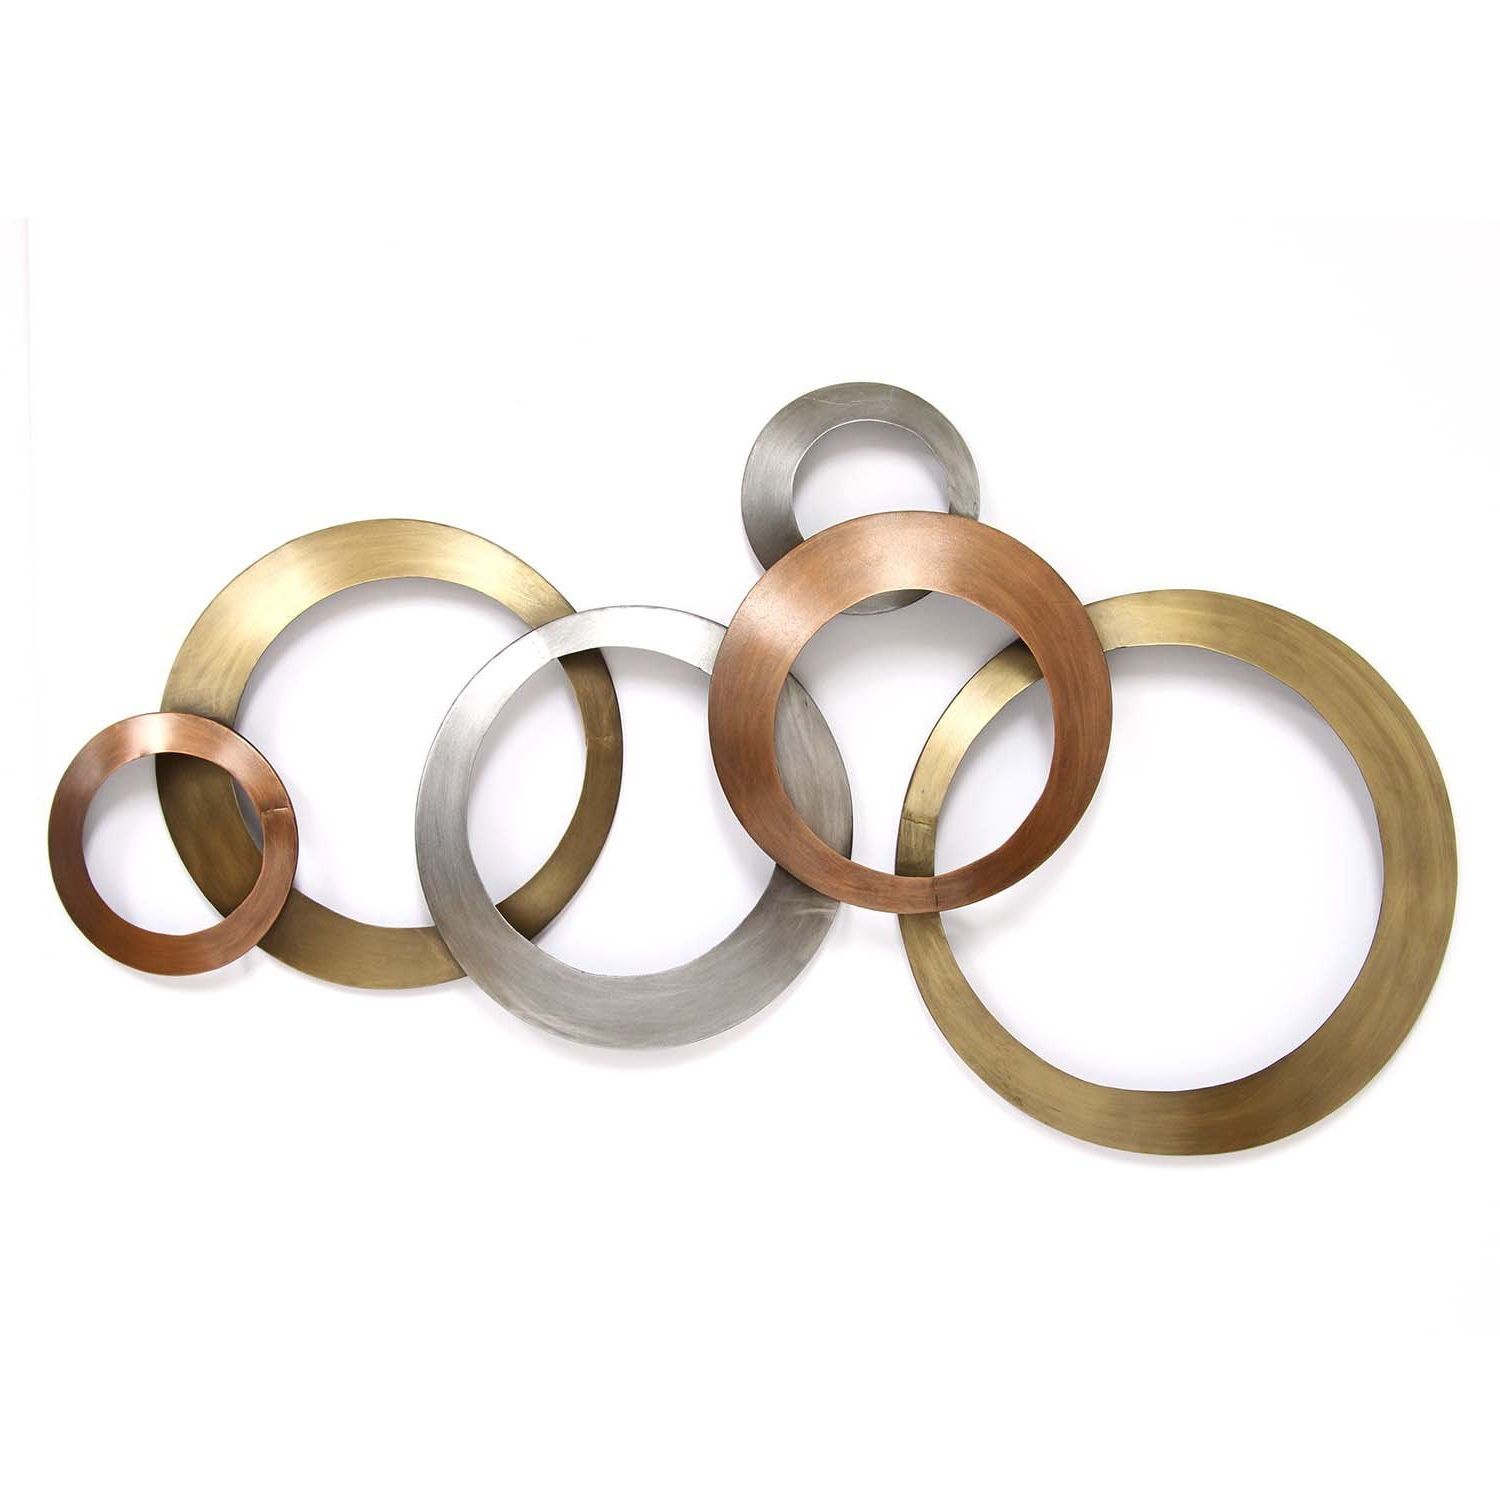 Fashionable Rings Wall Decor With Regard To Amazon: Stratton Home Decor Multi Metallic Rings Wall Decor (View 2 of 20)